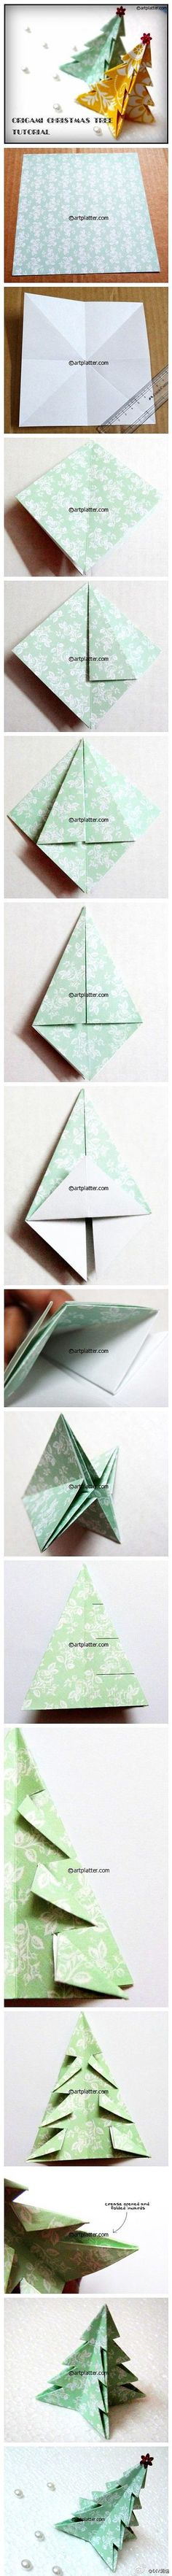 Origami paper art # Liangtu hands folded origami Christmas tree tutorial # friends ~ ~ ~ (from a few minutes . Origami Christmas Tree, Noel Christmas, Christmas Paper, Origami Xmas, Oragami, Xmas Trees, Unique Christmas Gifts, All Things Christmas, Christmas Projects